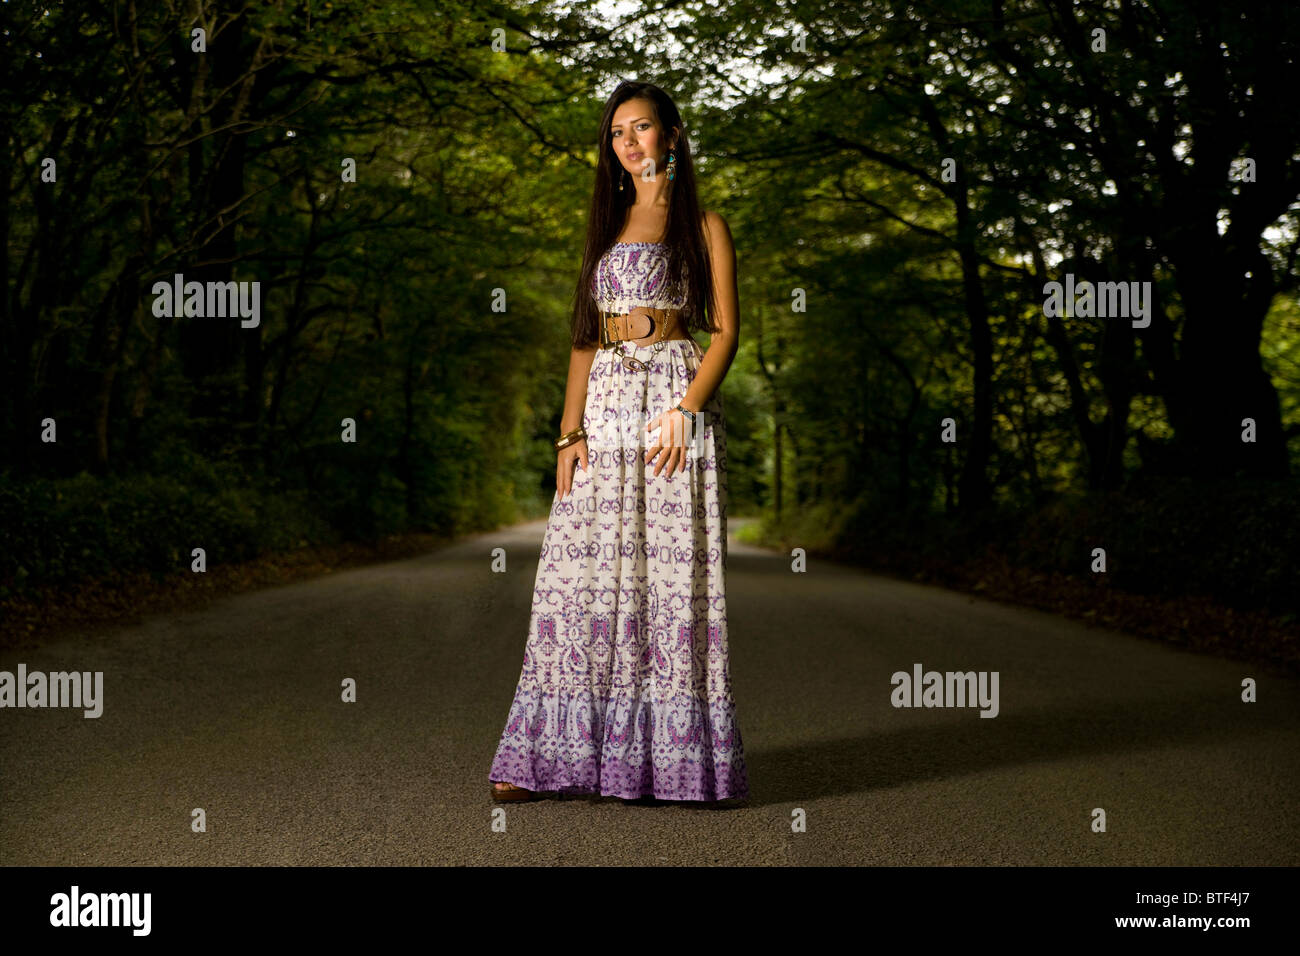 english pretty model woman standing in the middle of a tree lined road wearing a summer floral dress - Stock Image